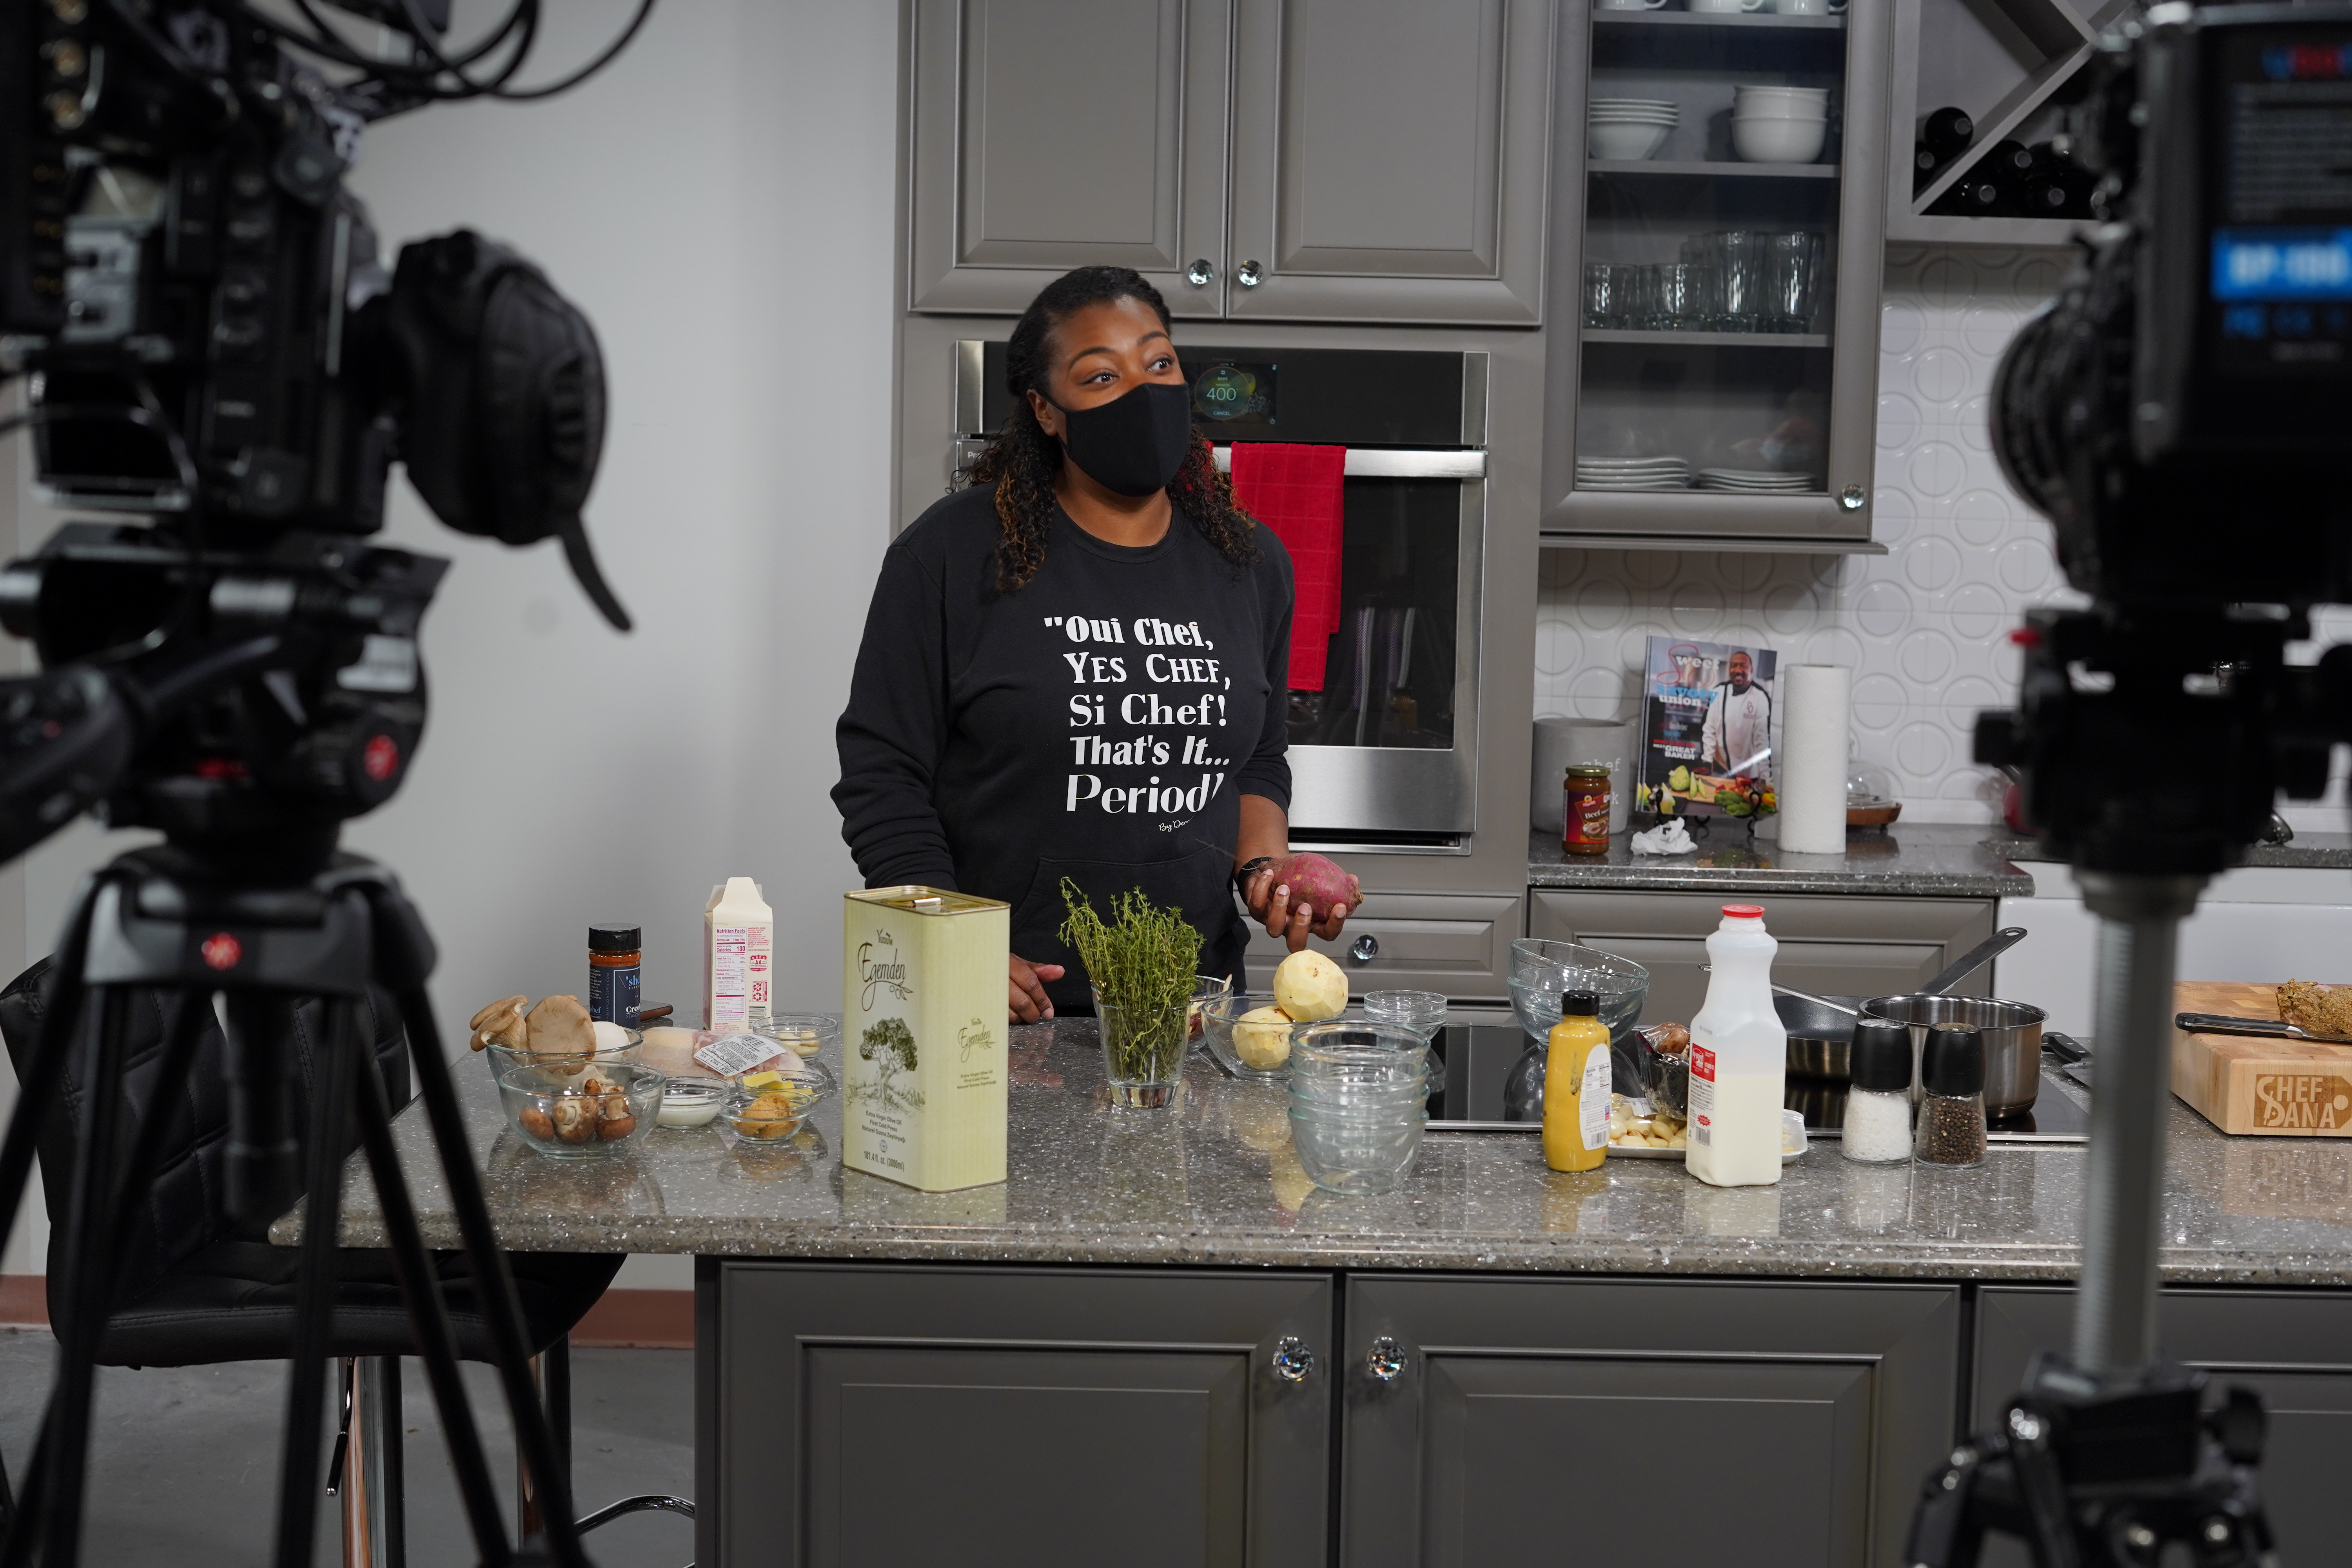 A Black woman wearing a black shirt and black face mask holds a potato while standing in a kitchen. Ingredients like olive oil are scattered on the counter, and a pair of cameras sits in the background.